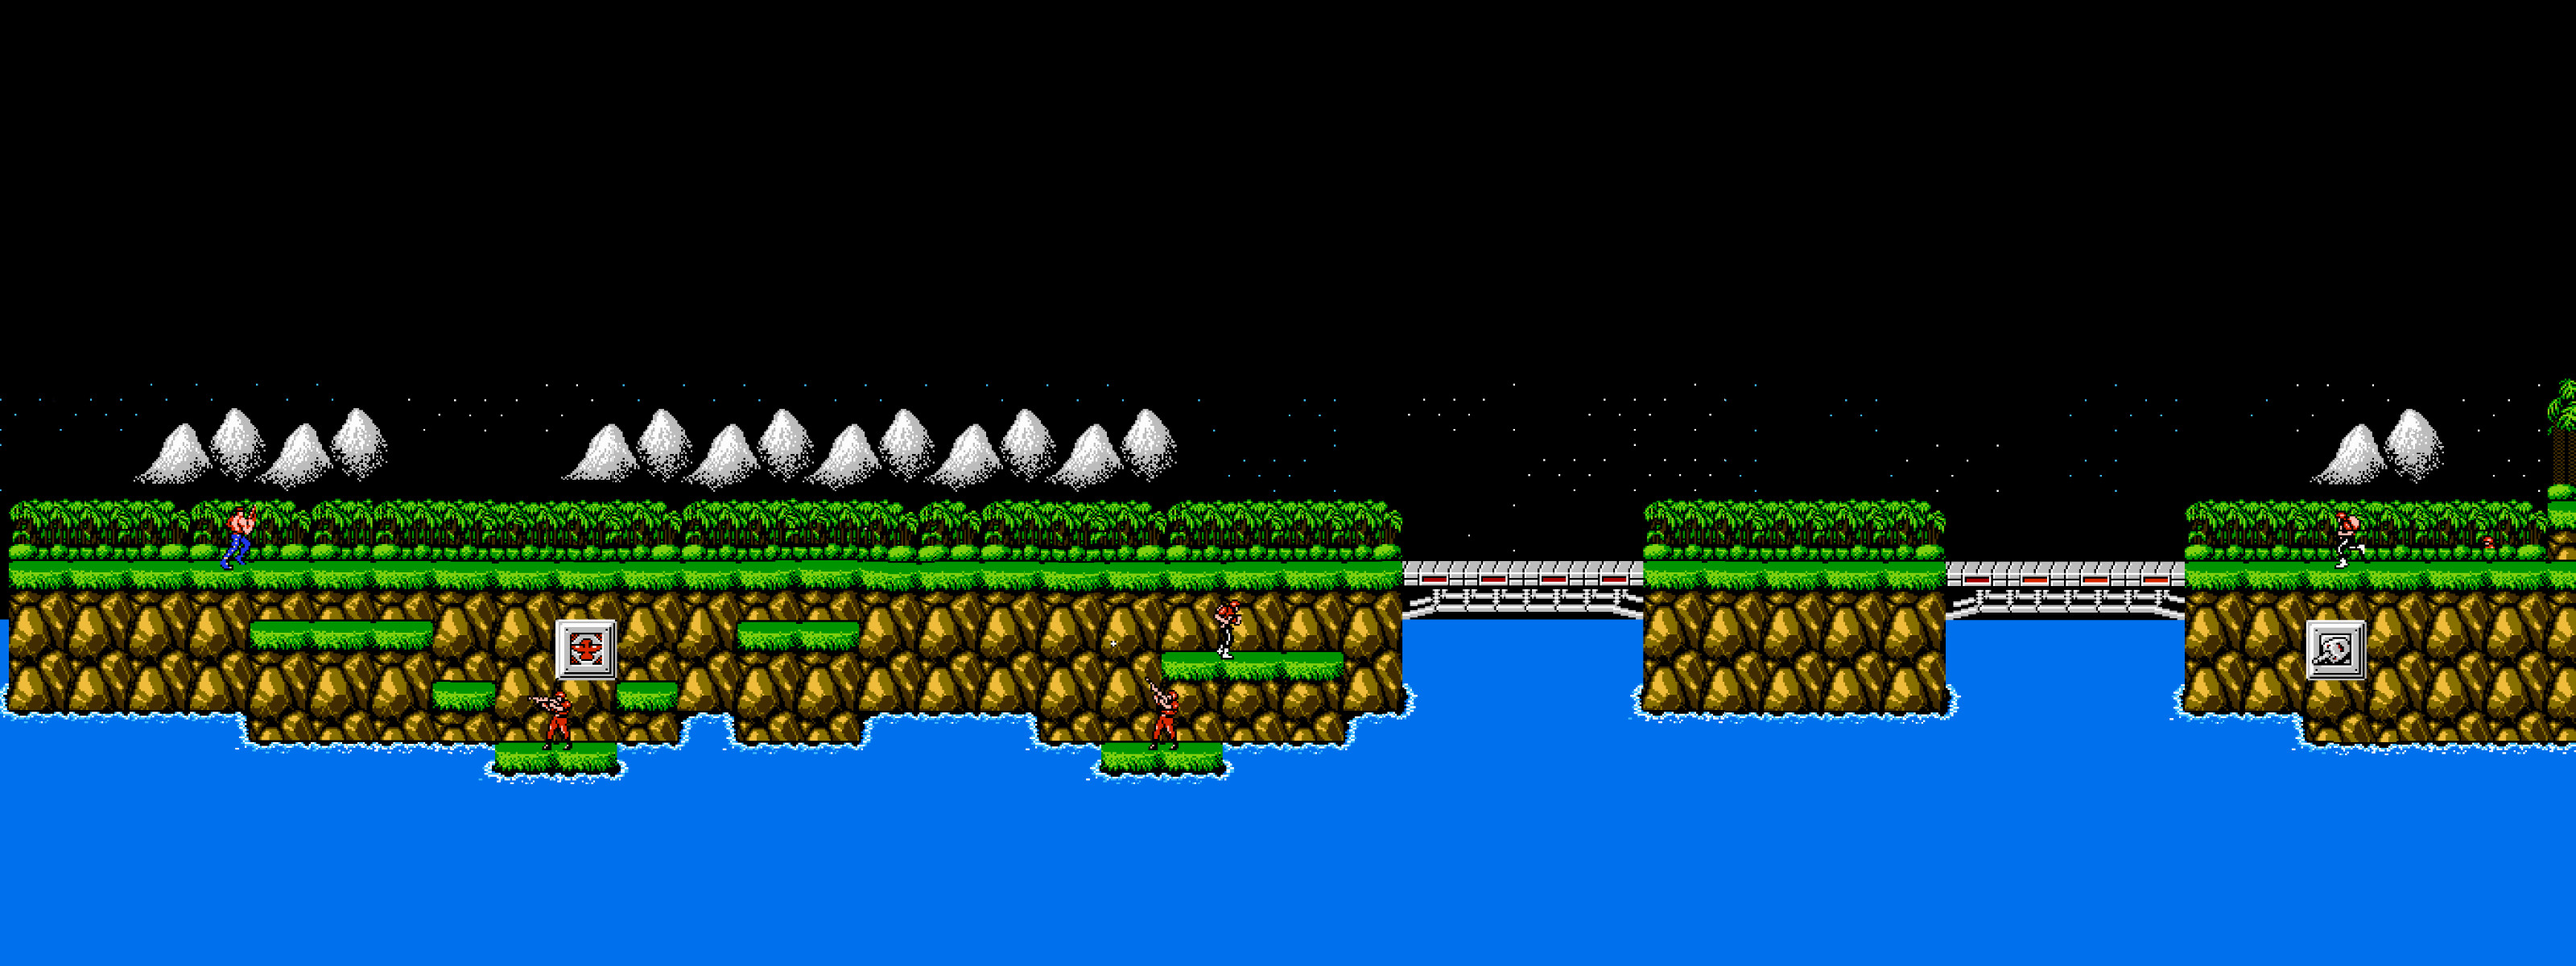 Res: 3200x1200, contra stage 1 jungle by kennyzzle customization wallpaper multi